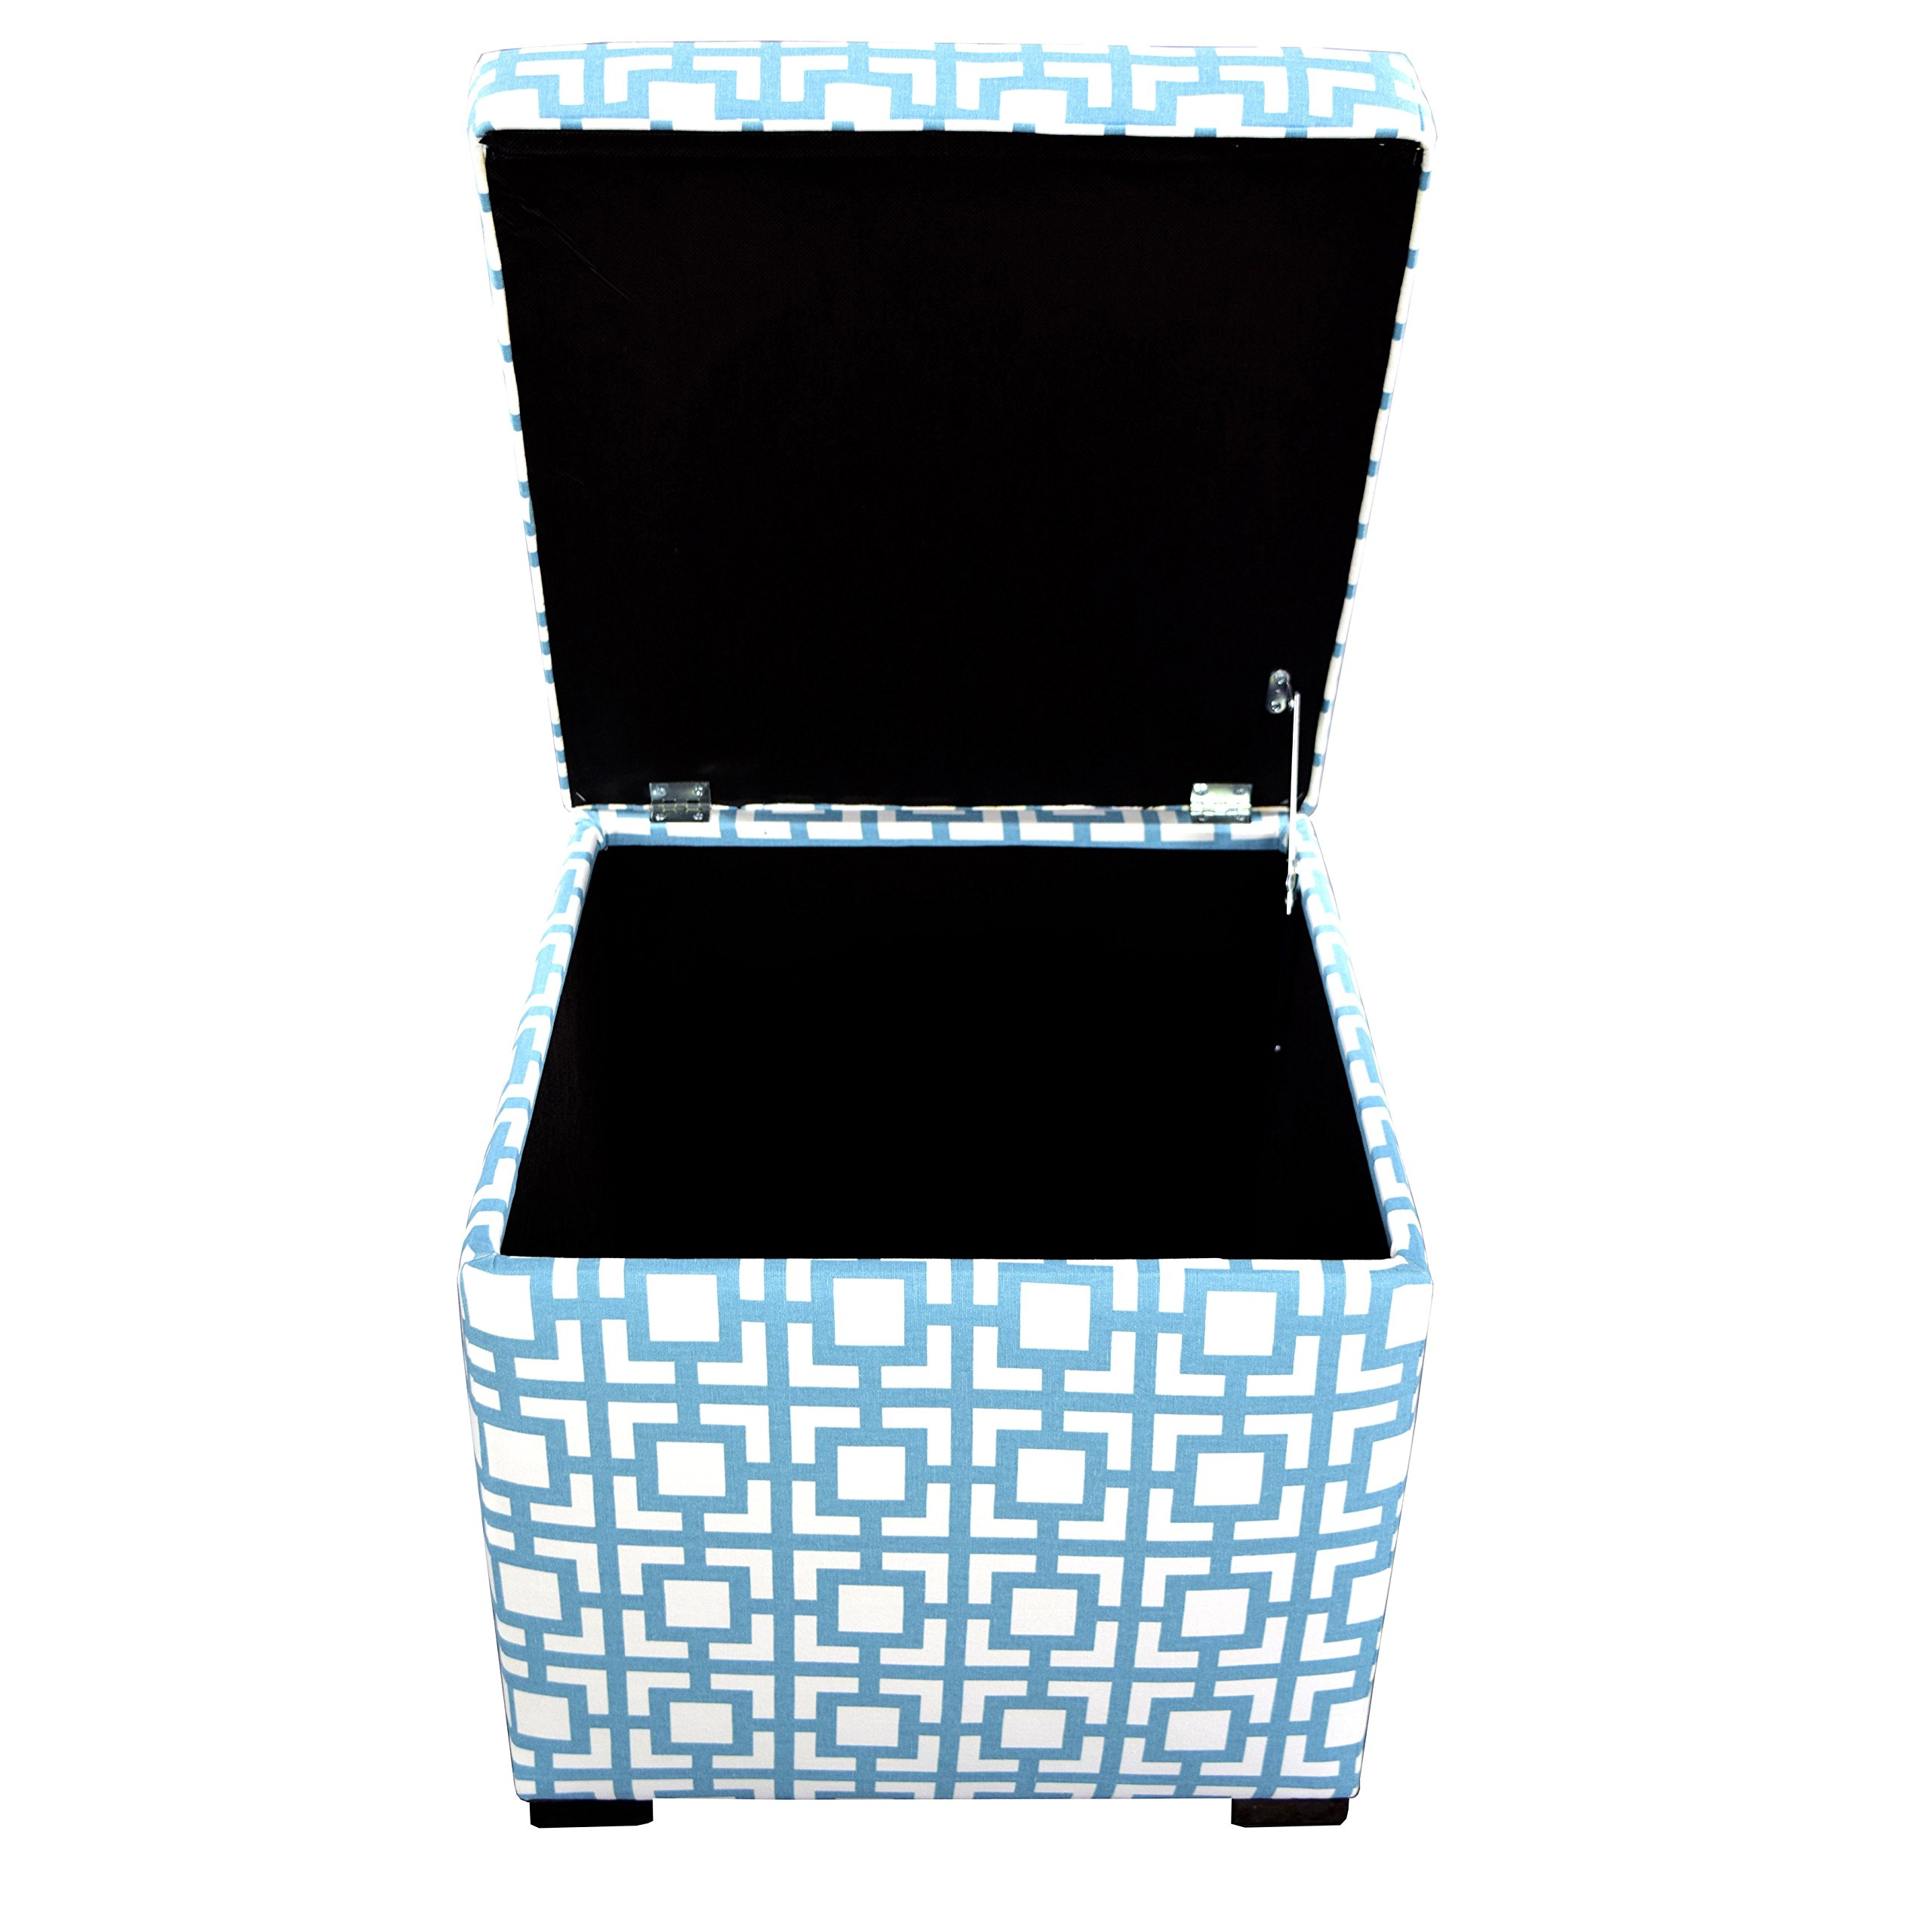 The Sole Secret Mini Liftop Square Fabric Upholstered Shoe Storage Ottoman with Dividers, 18.5'' x 19'' x 19'', Regatta